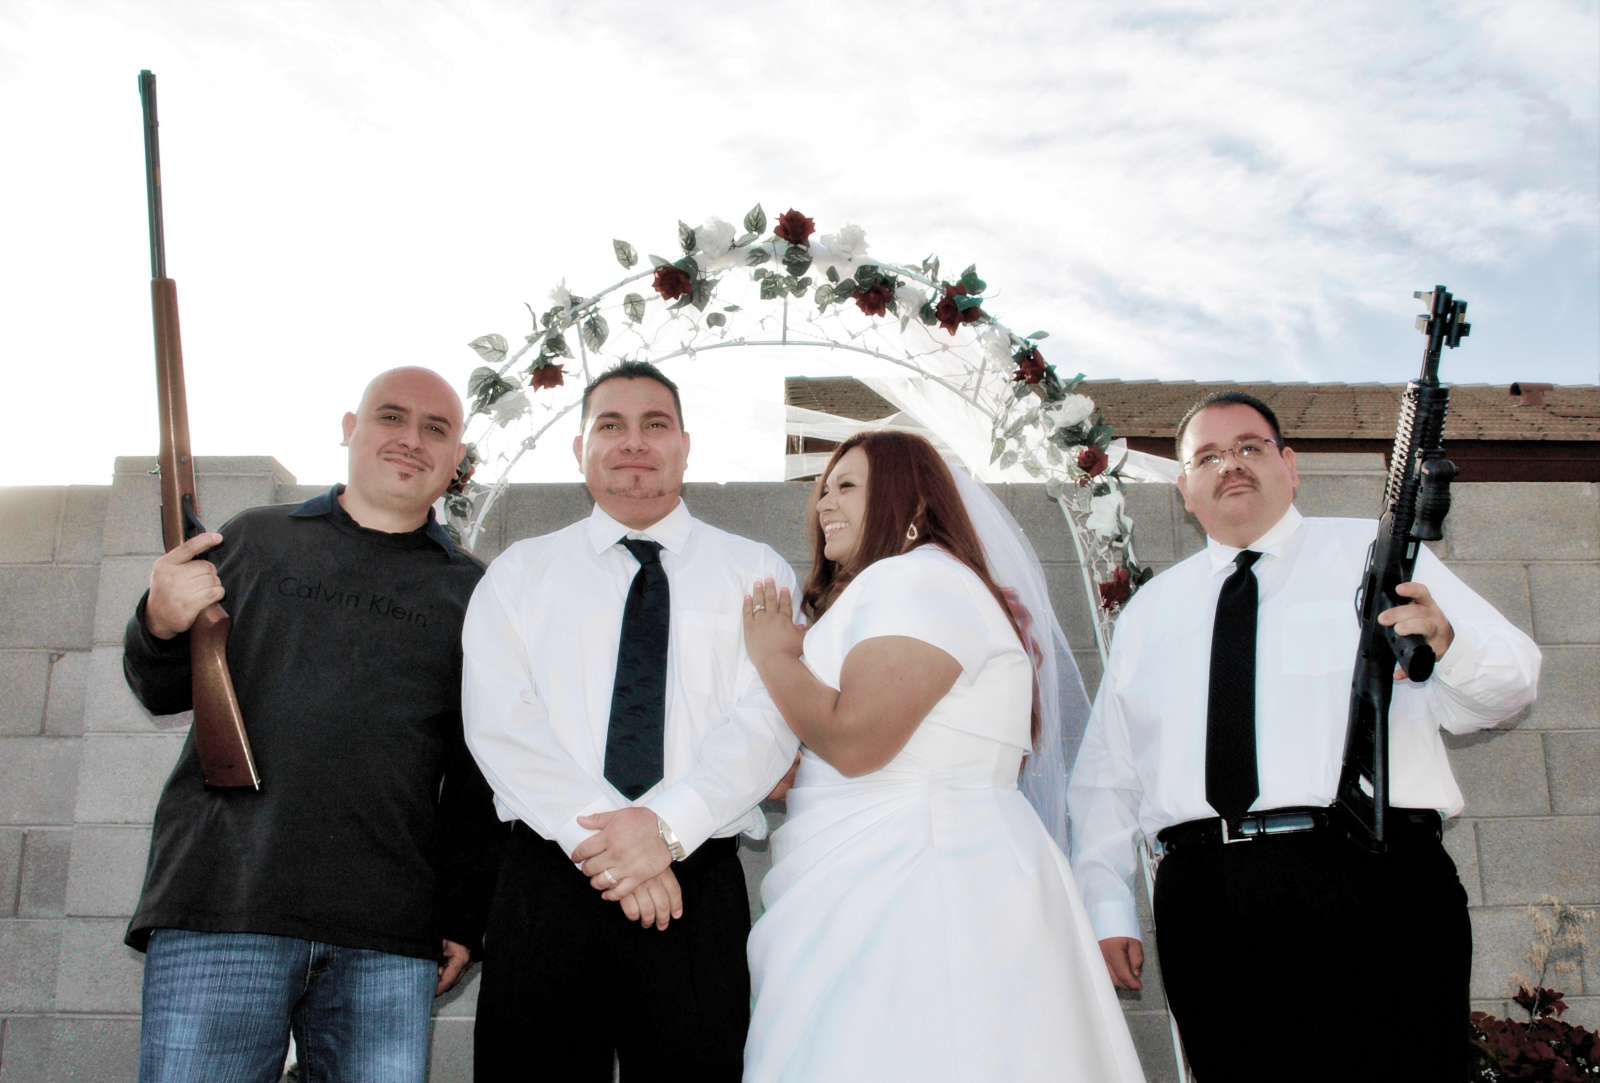 Wedding police operate in russia